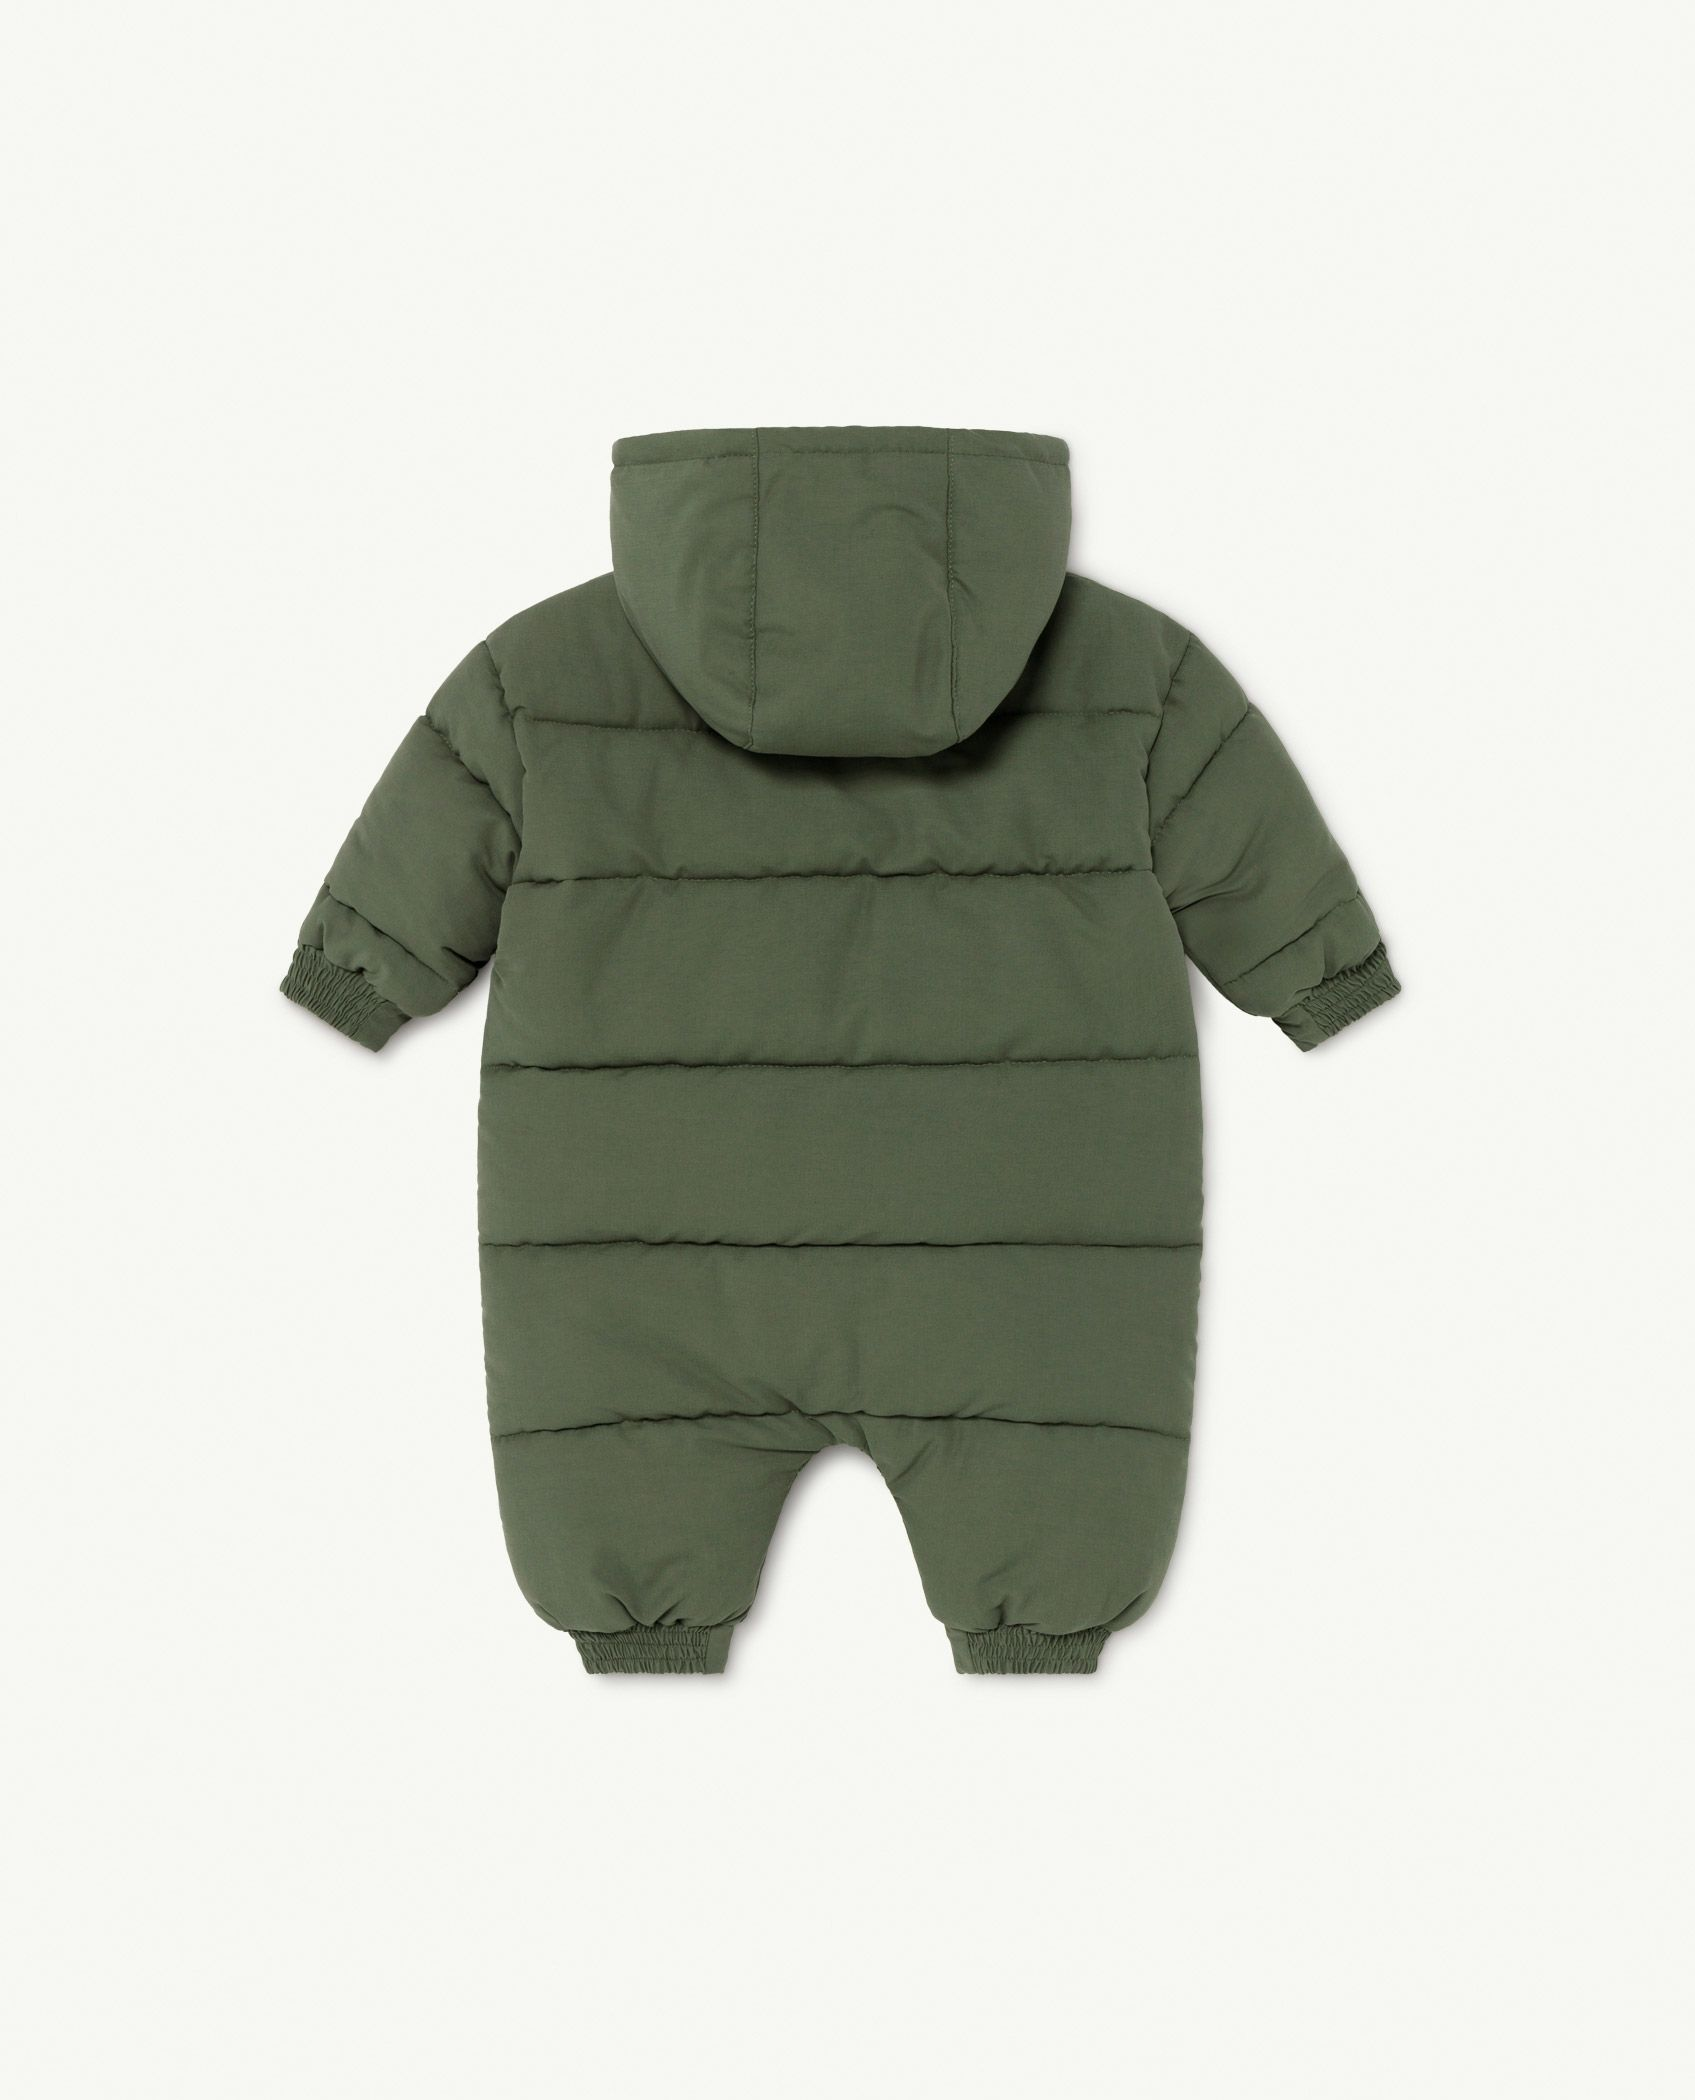 Military The Animals Bumblebee Baby Jumpsuit img-2